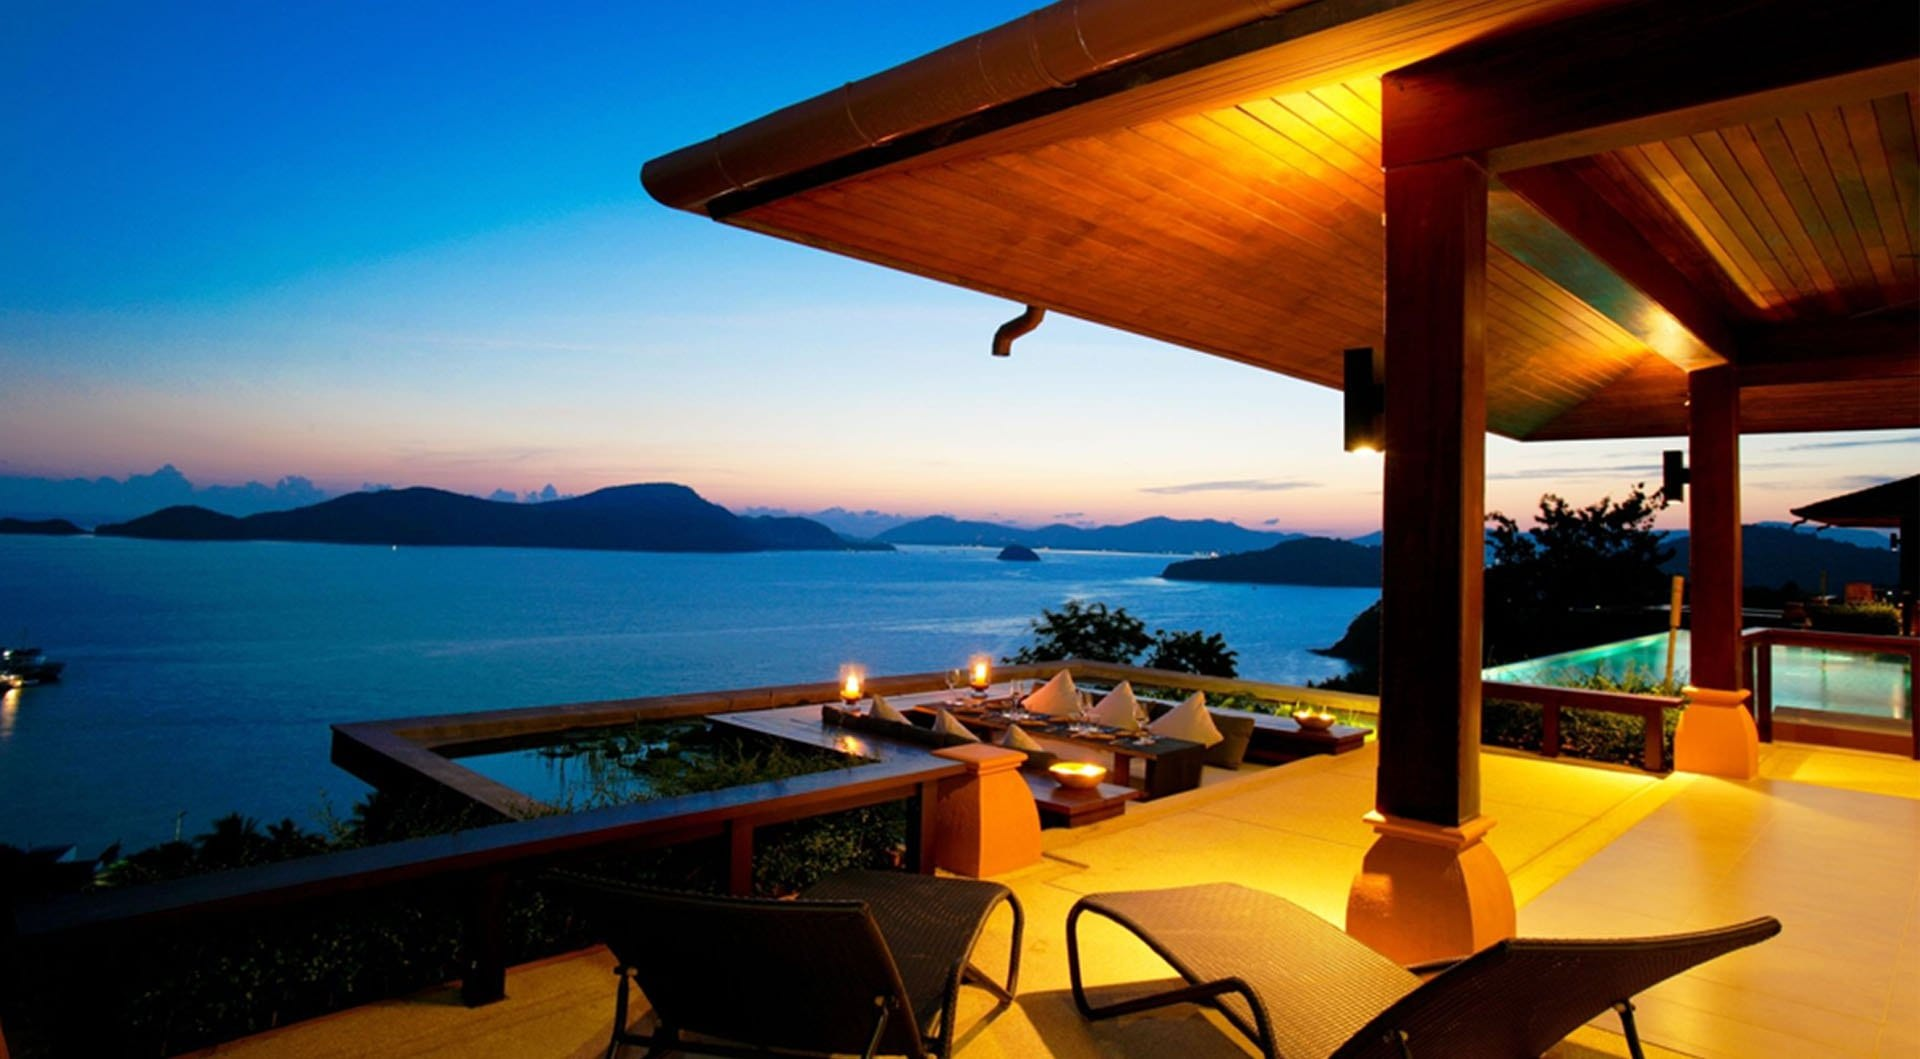 How will Thailand's Real Estate Market Evolve in 2017